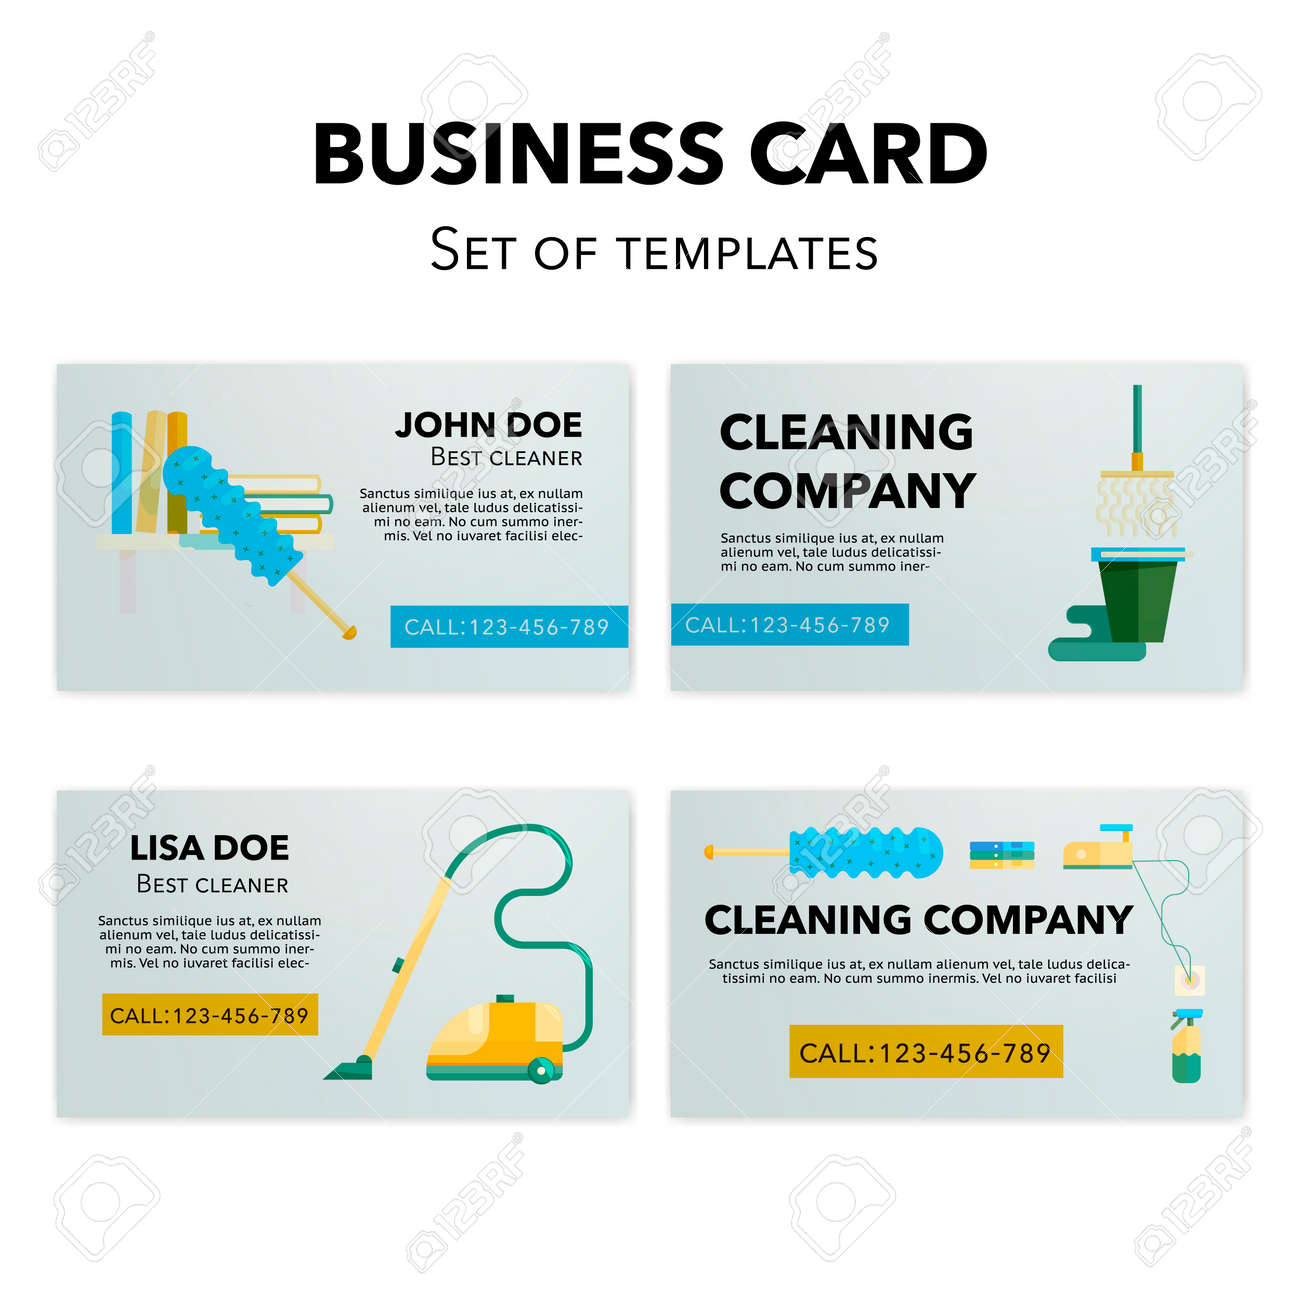 Cleaning business cards templates set flat cleaning appliances cleaning business cards templates set flat cleaning appliances concepts illustration stock vector 68695316 fbccfo Gallery